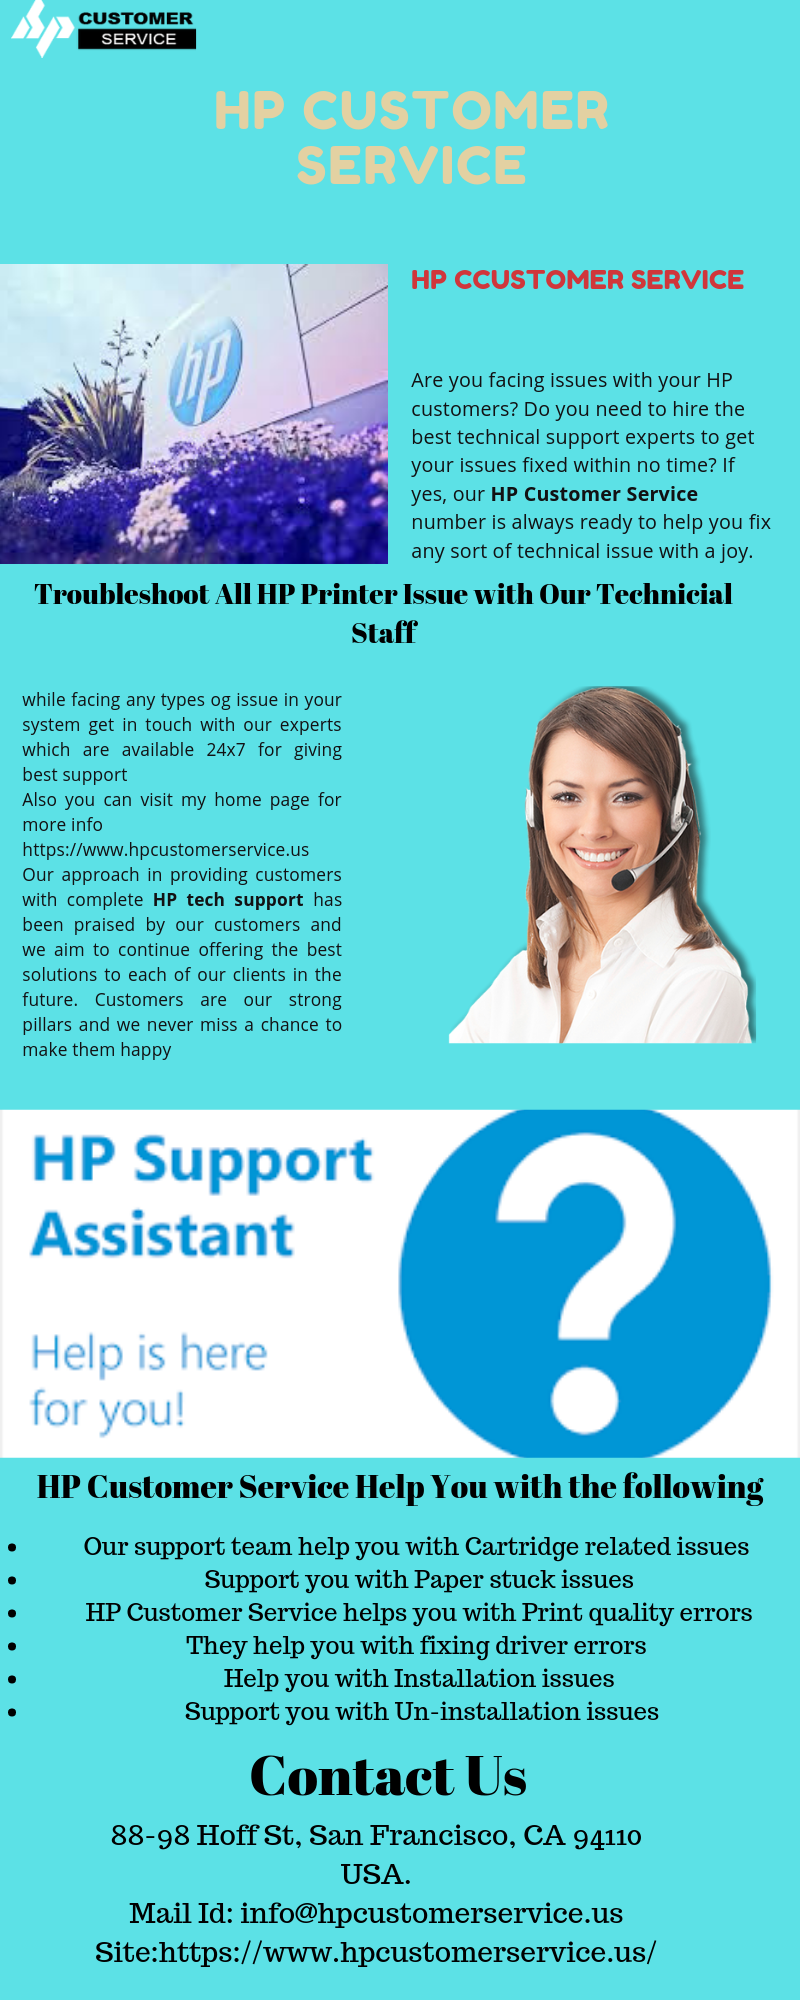 For any types of issue in your hp contact HP Customer